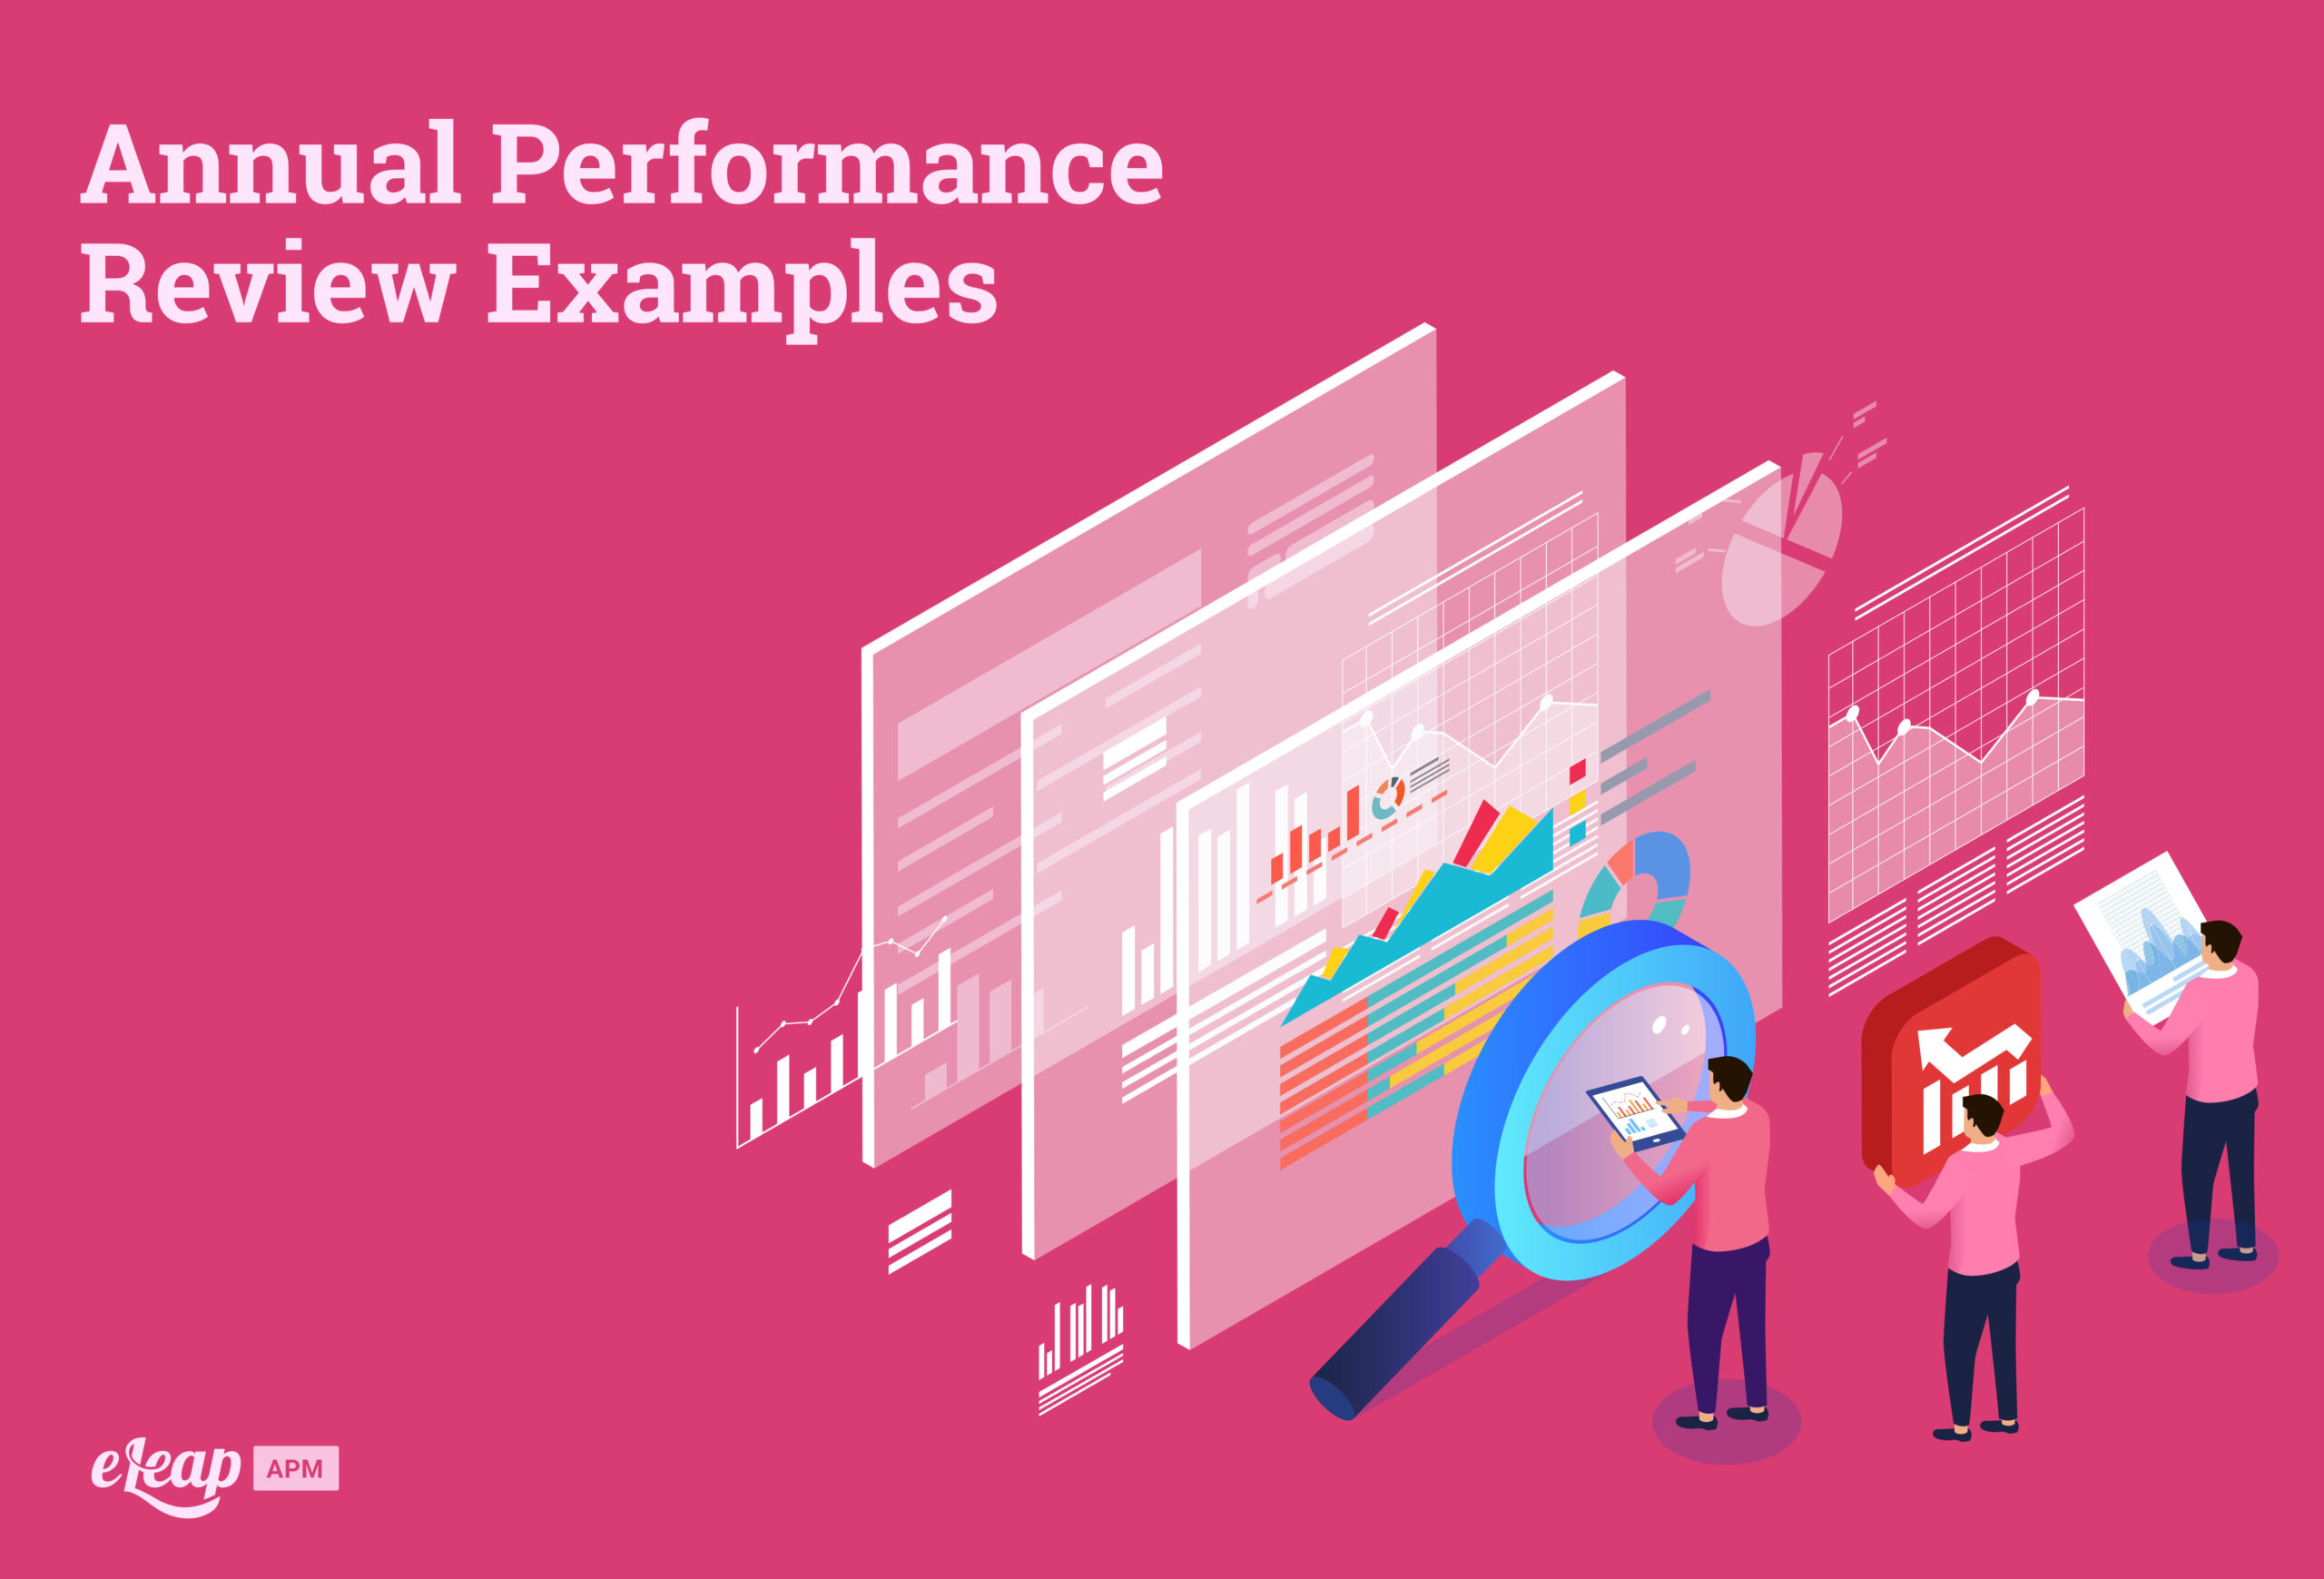 Annual Performance Review Examples